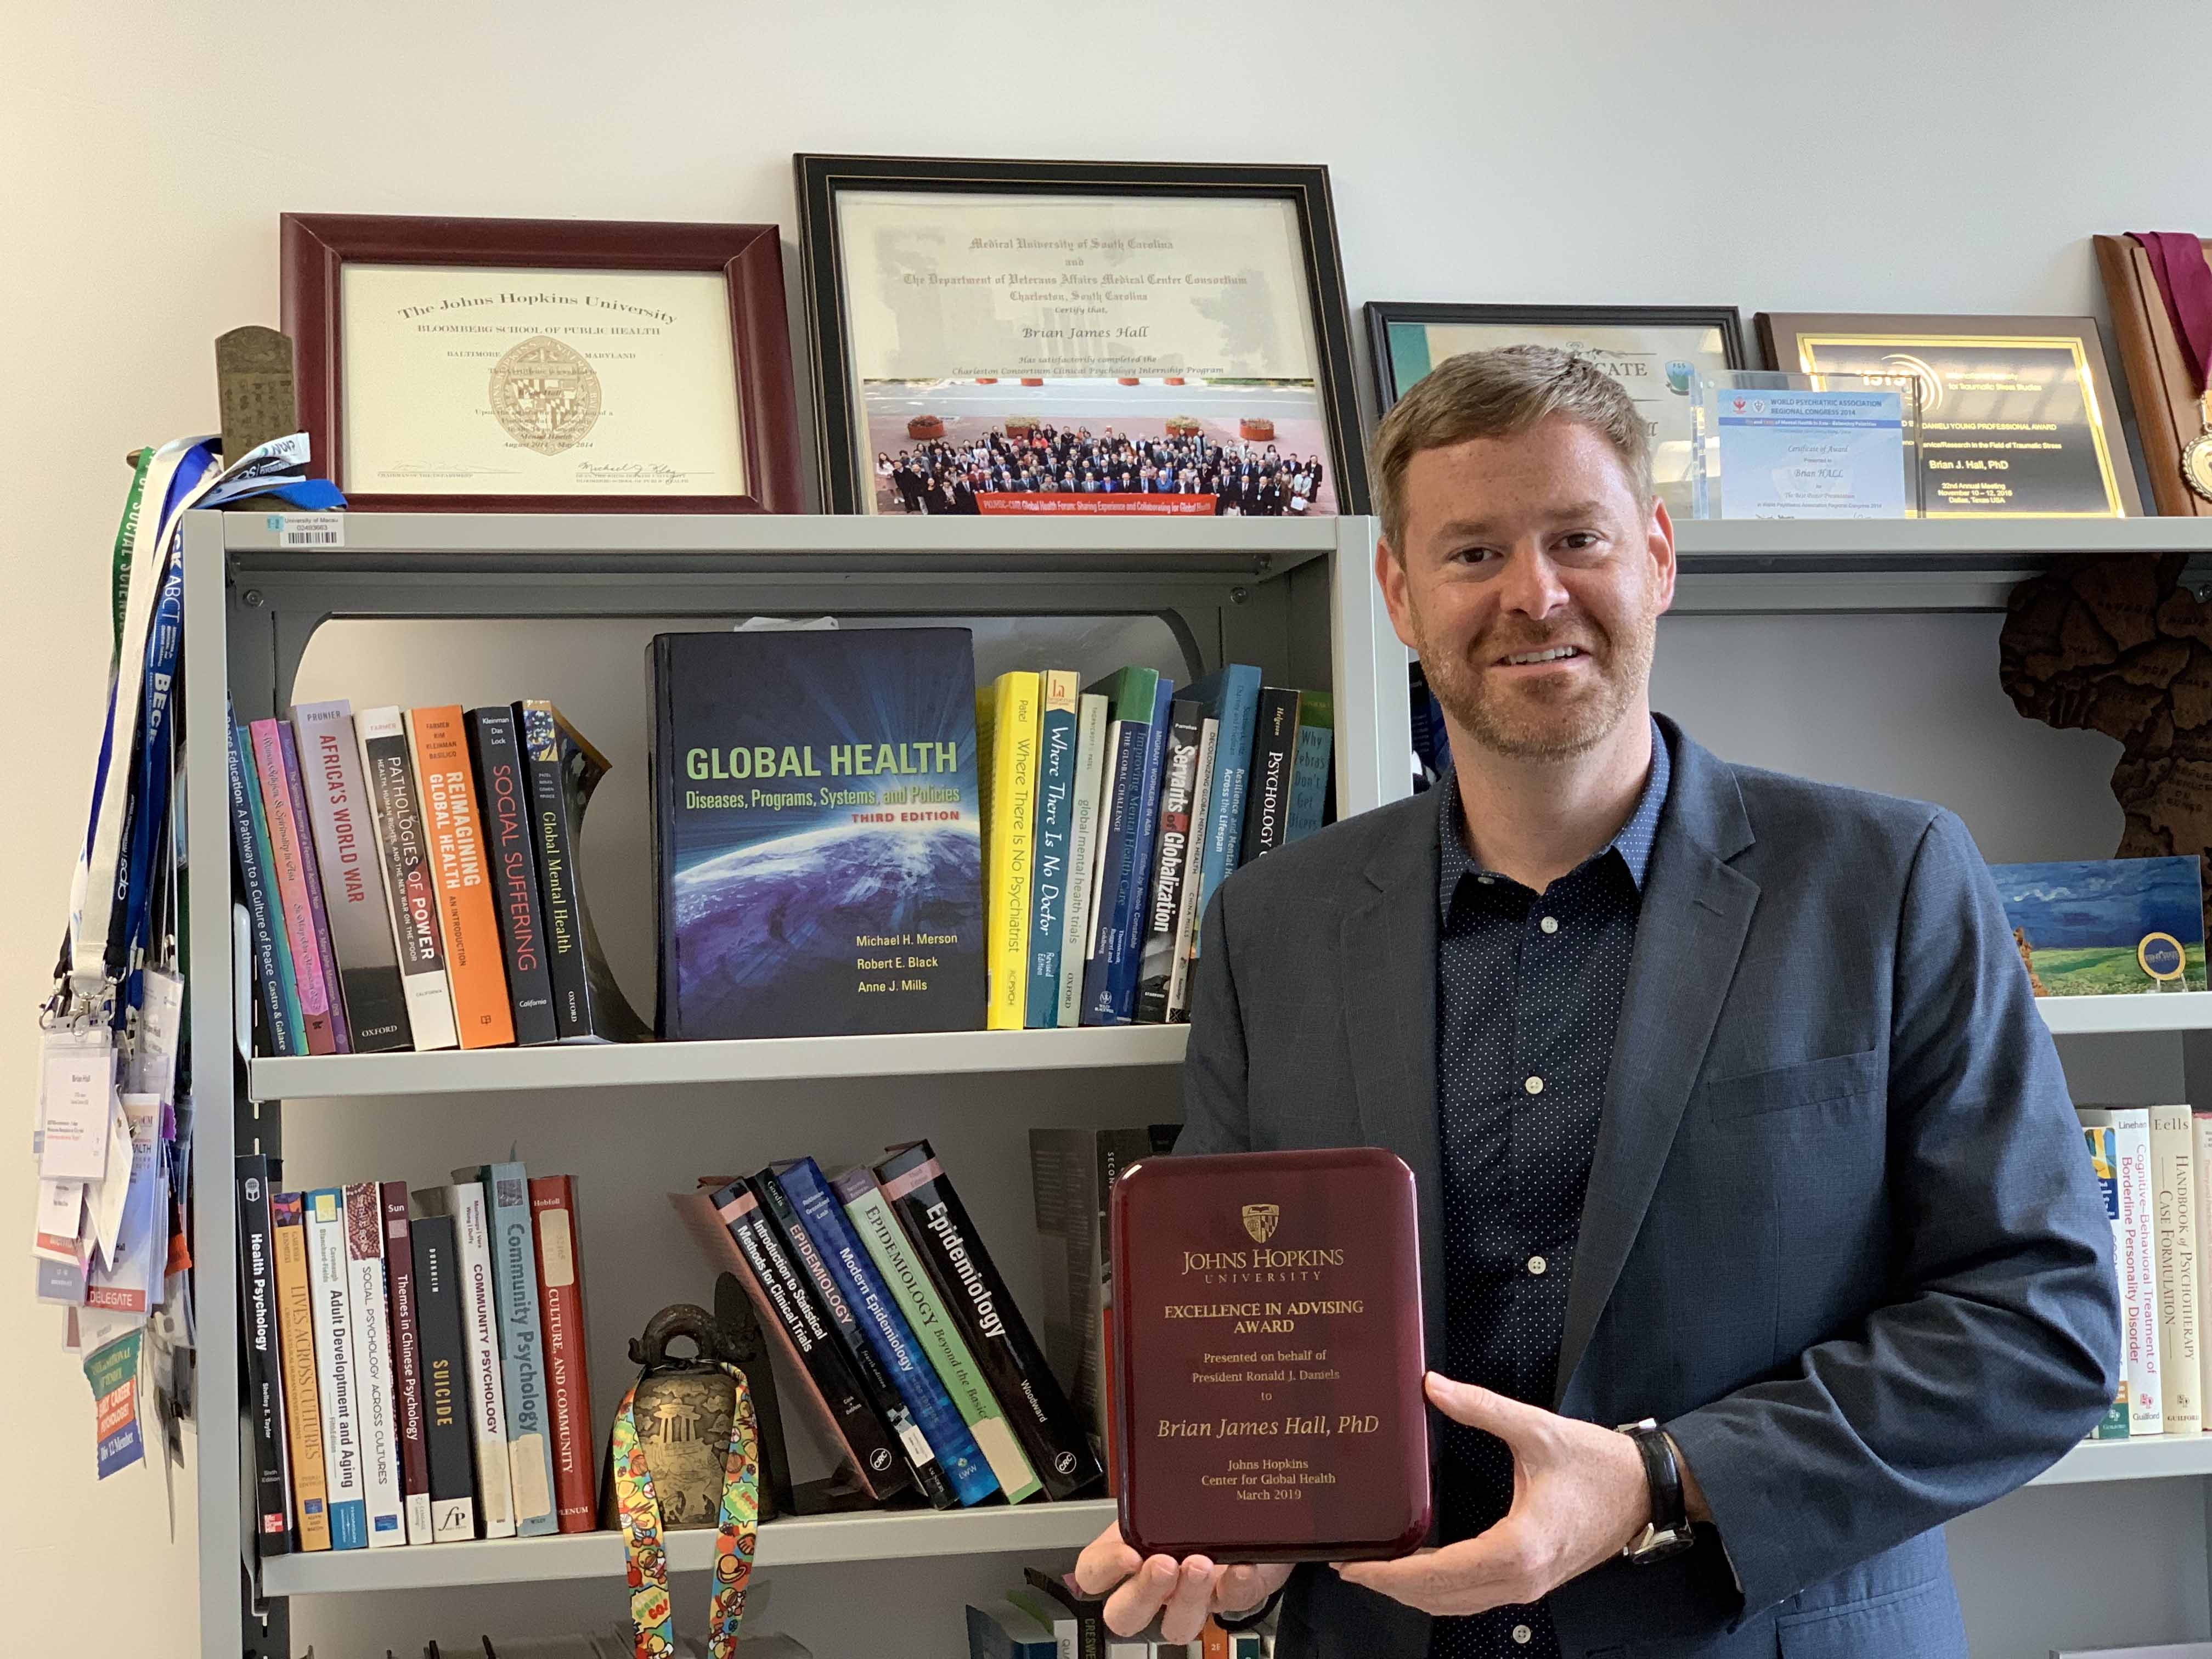 Prof Brian Hall received an Excellence in Advising Award from the Center for Global Health of the Johns Hopkins Bloomberg School of Public Health